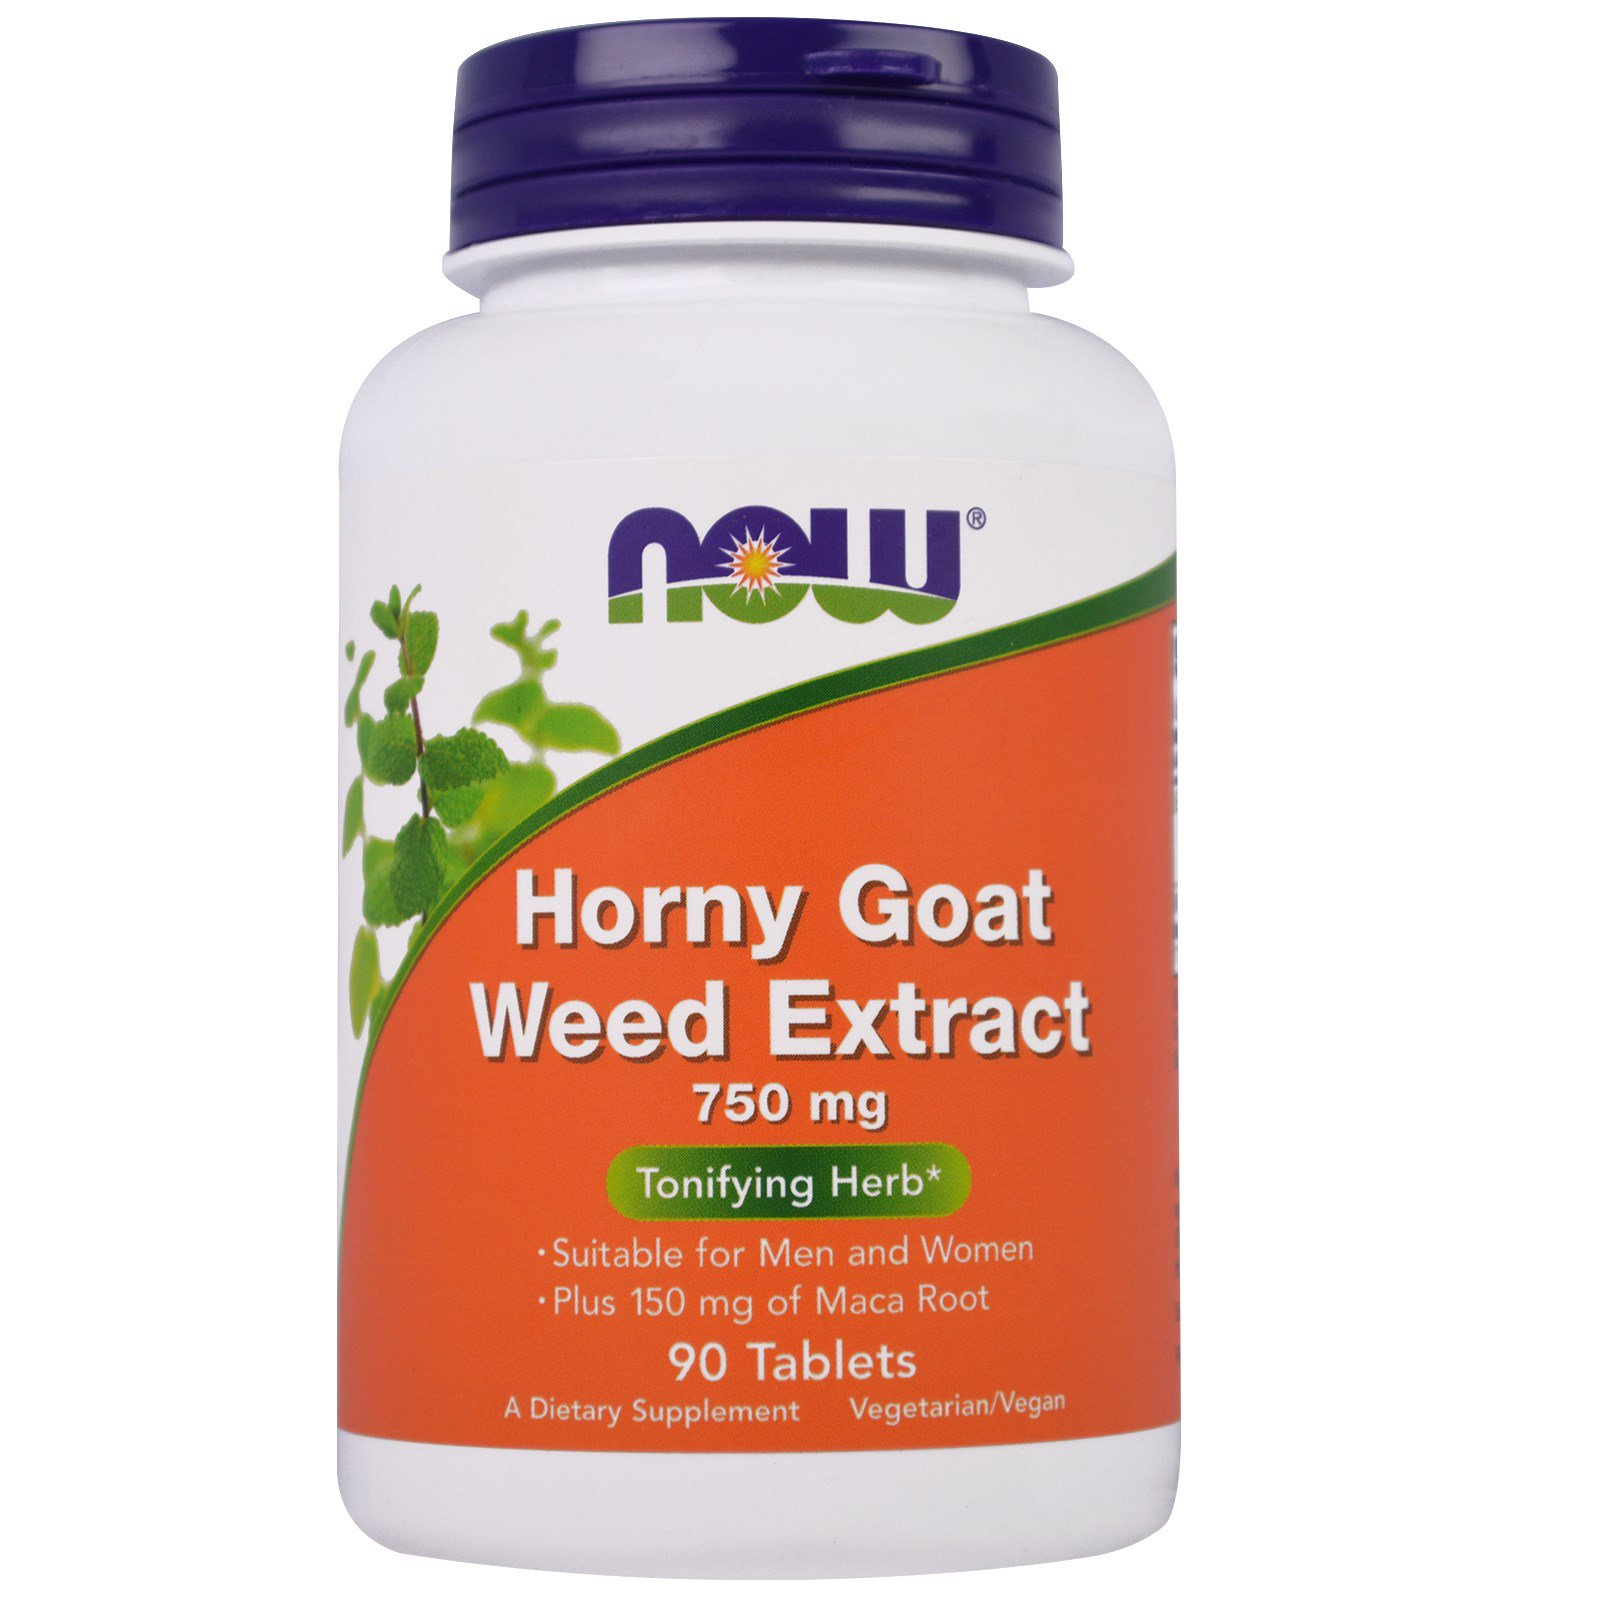 What Is Horny Goat Weed Good For